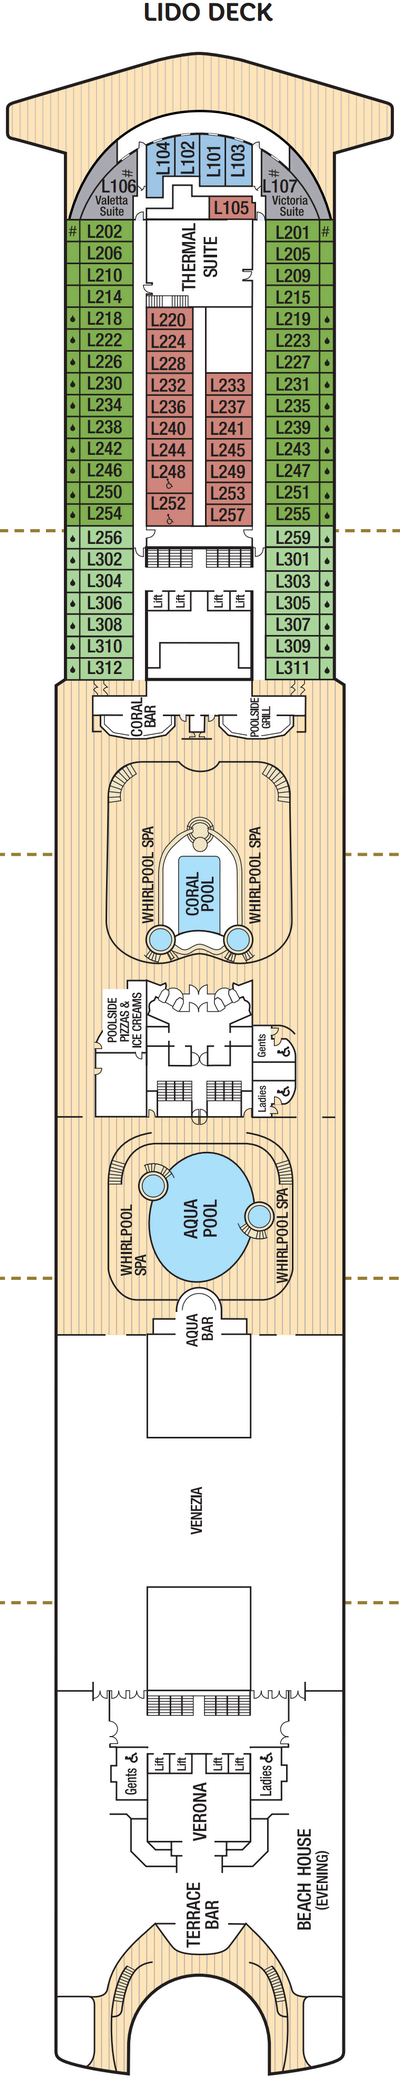 Azura Lido Deck layout